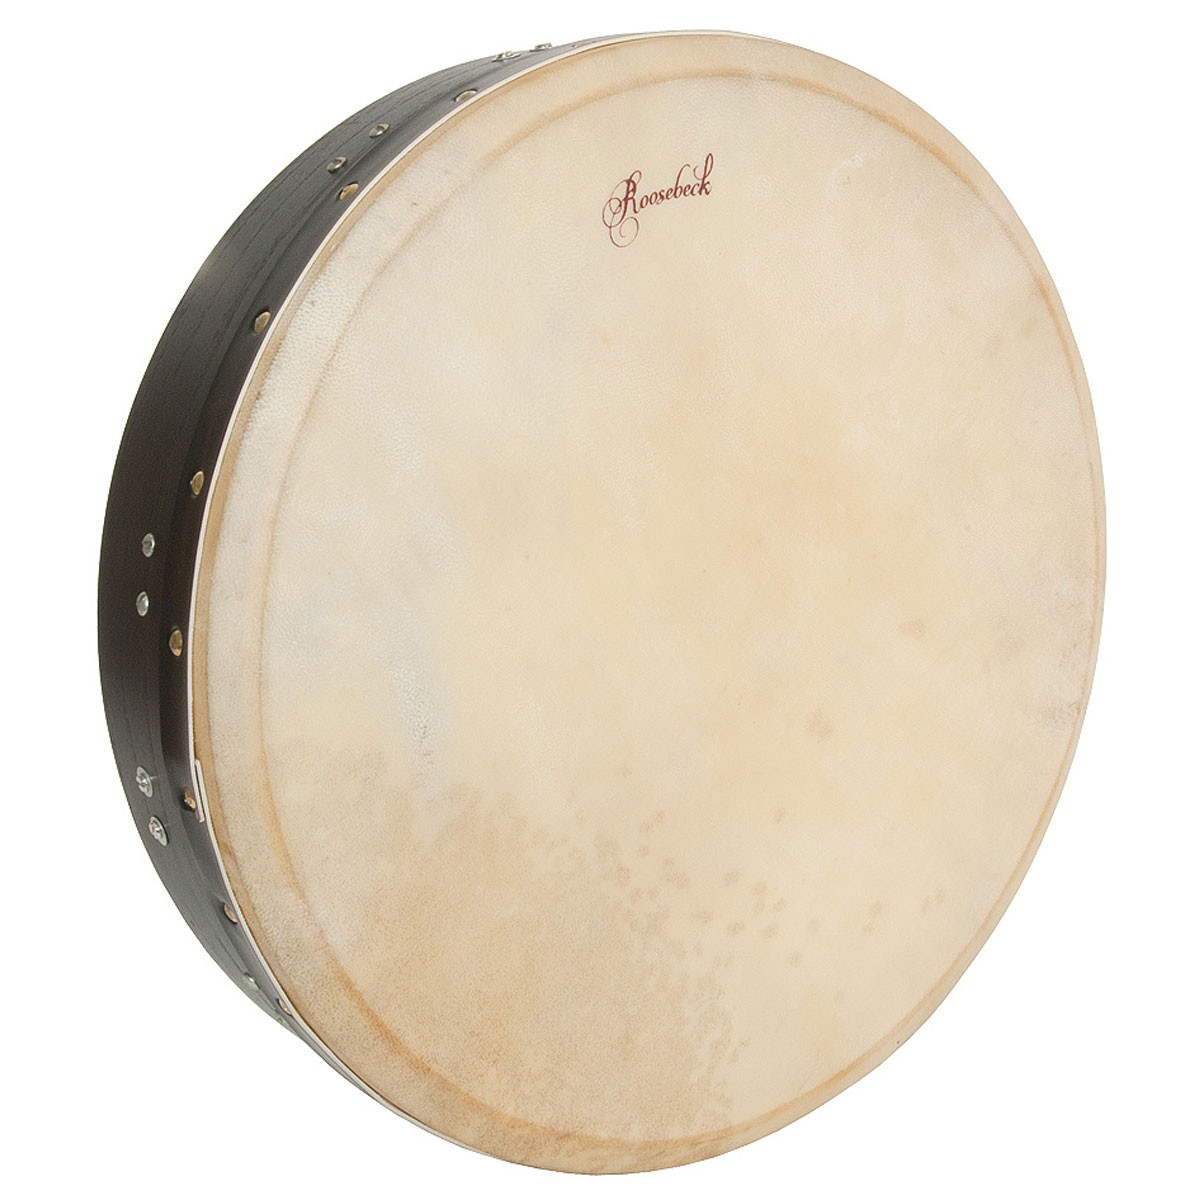 Roosebeck Tunable Mulberry Bodhran T-Bar 16'x3.5' - Black